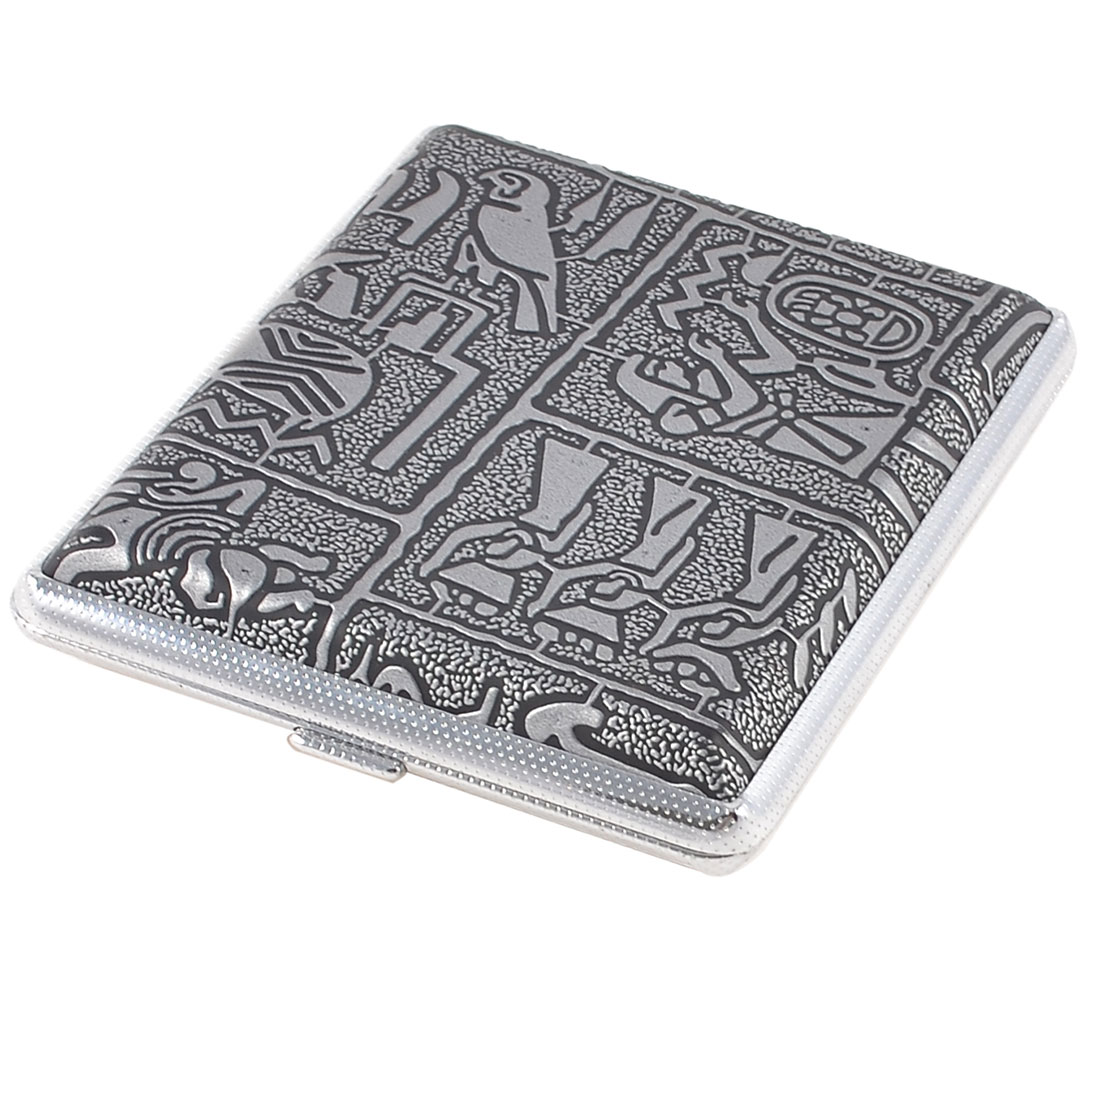 10 x 8.5cm Egypt Women Printed Faux Leather Cigarette Case Silver Tone Black